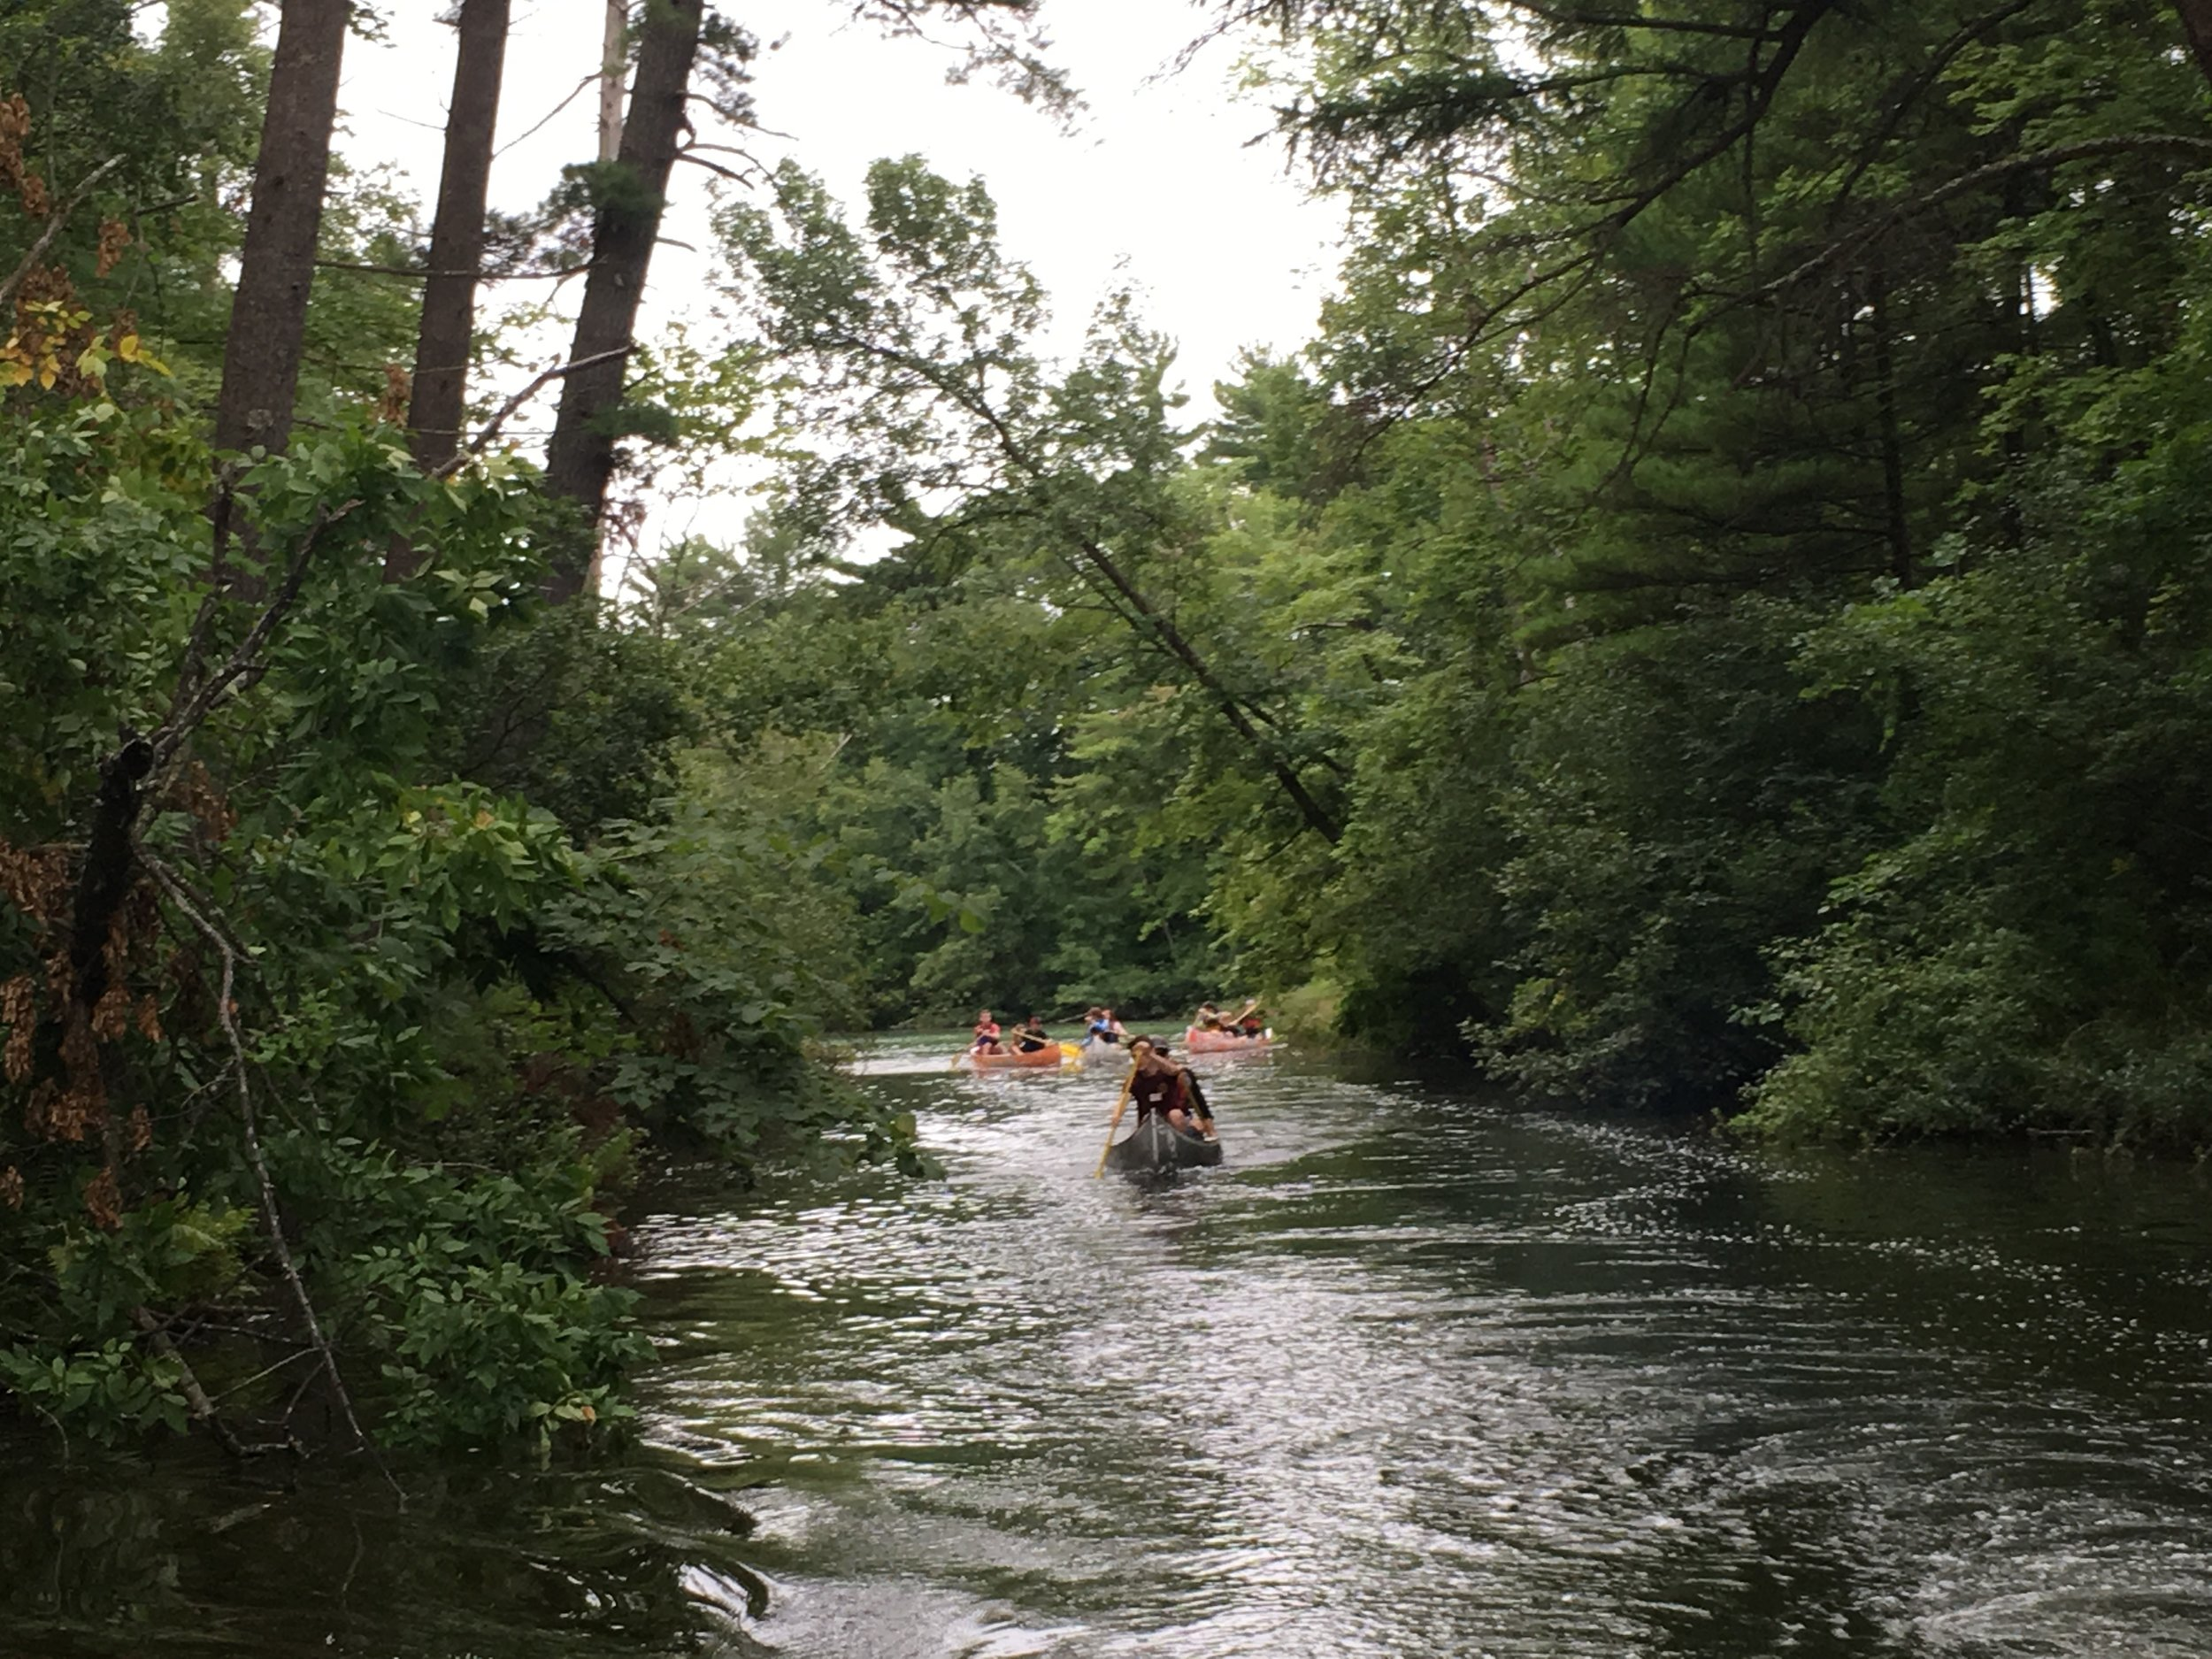 Campers heading down the Crystal River on one of many Onaway Adventure Camp Canoe Trips.